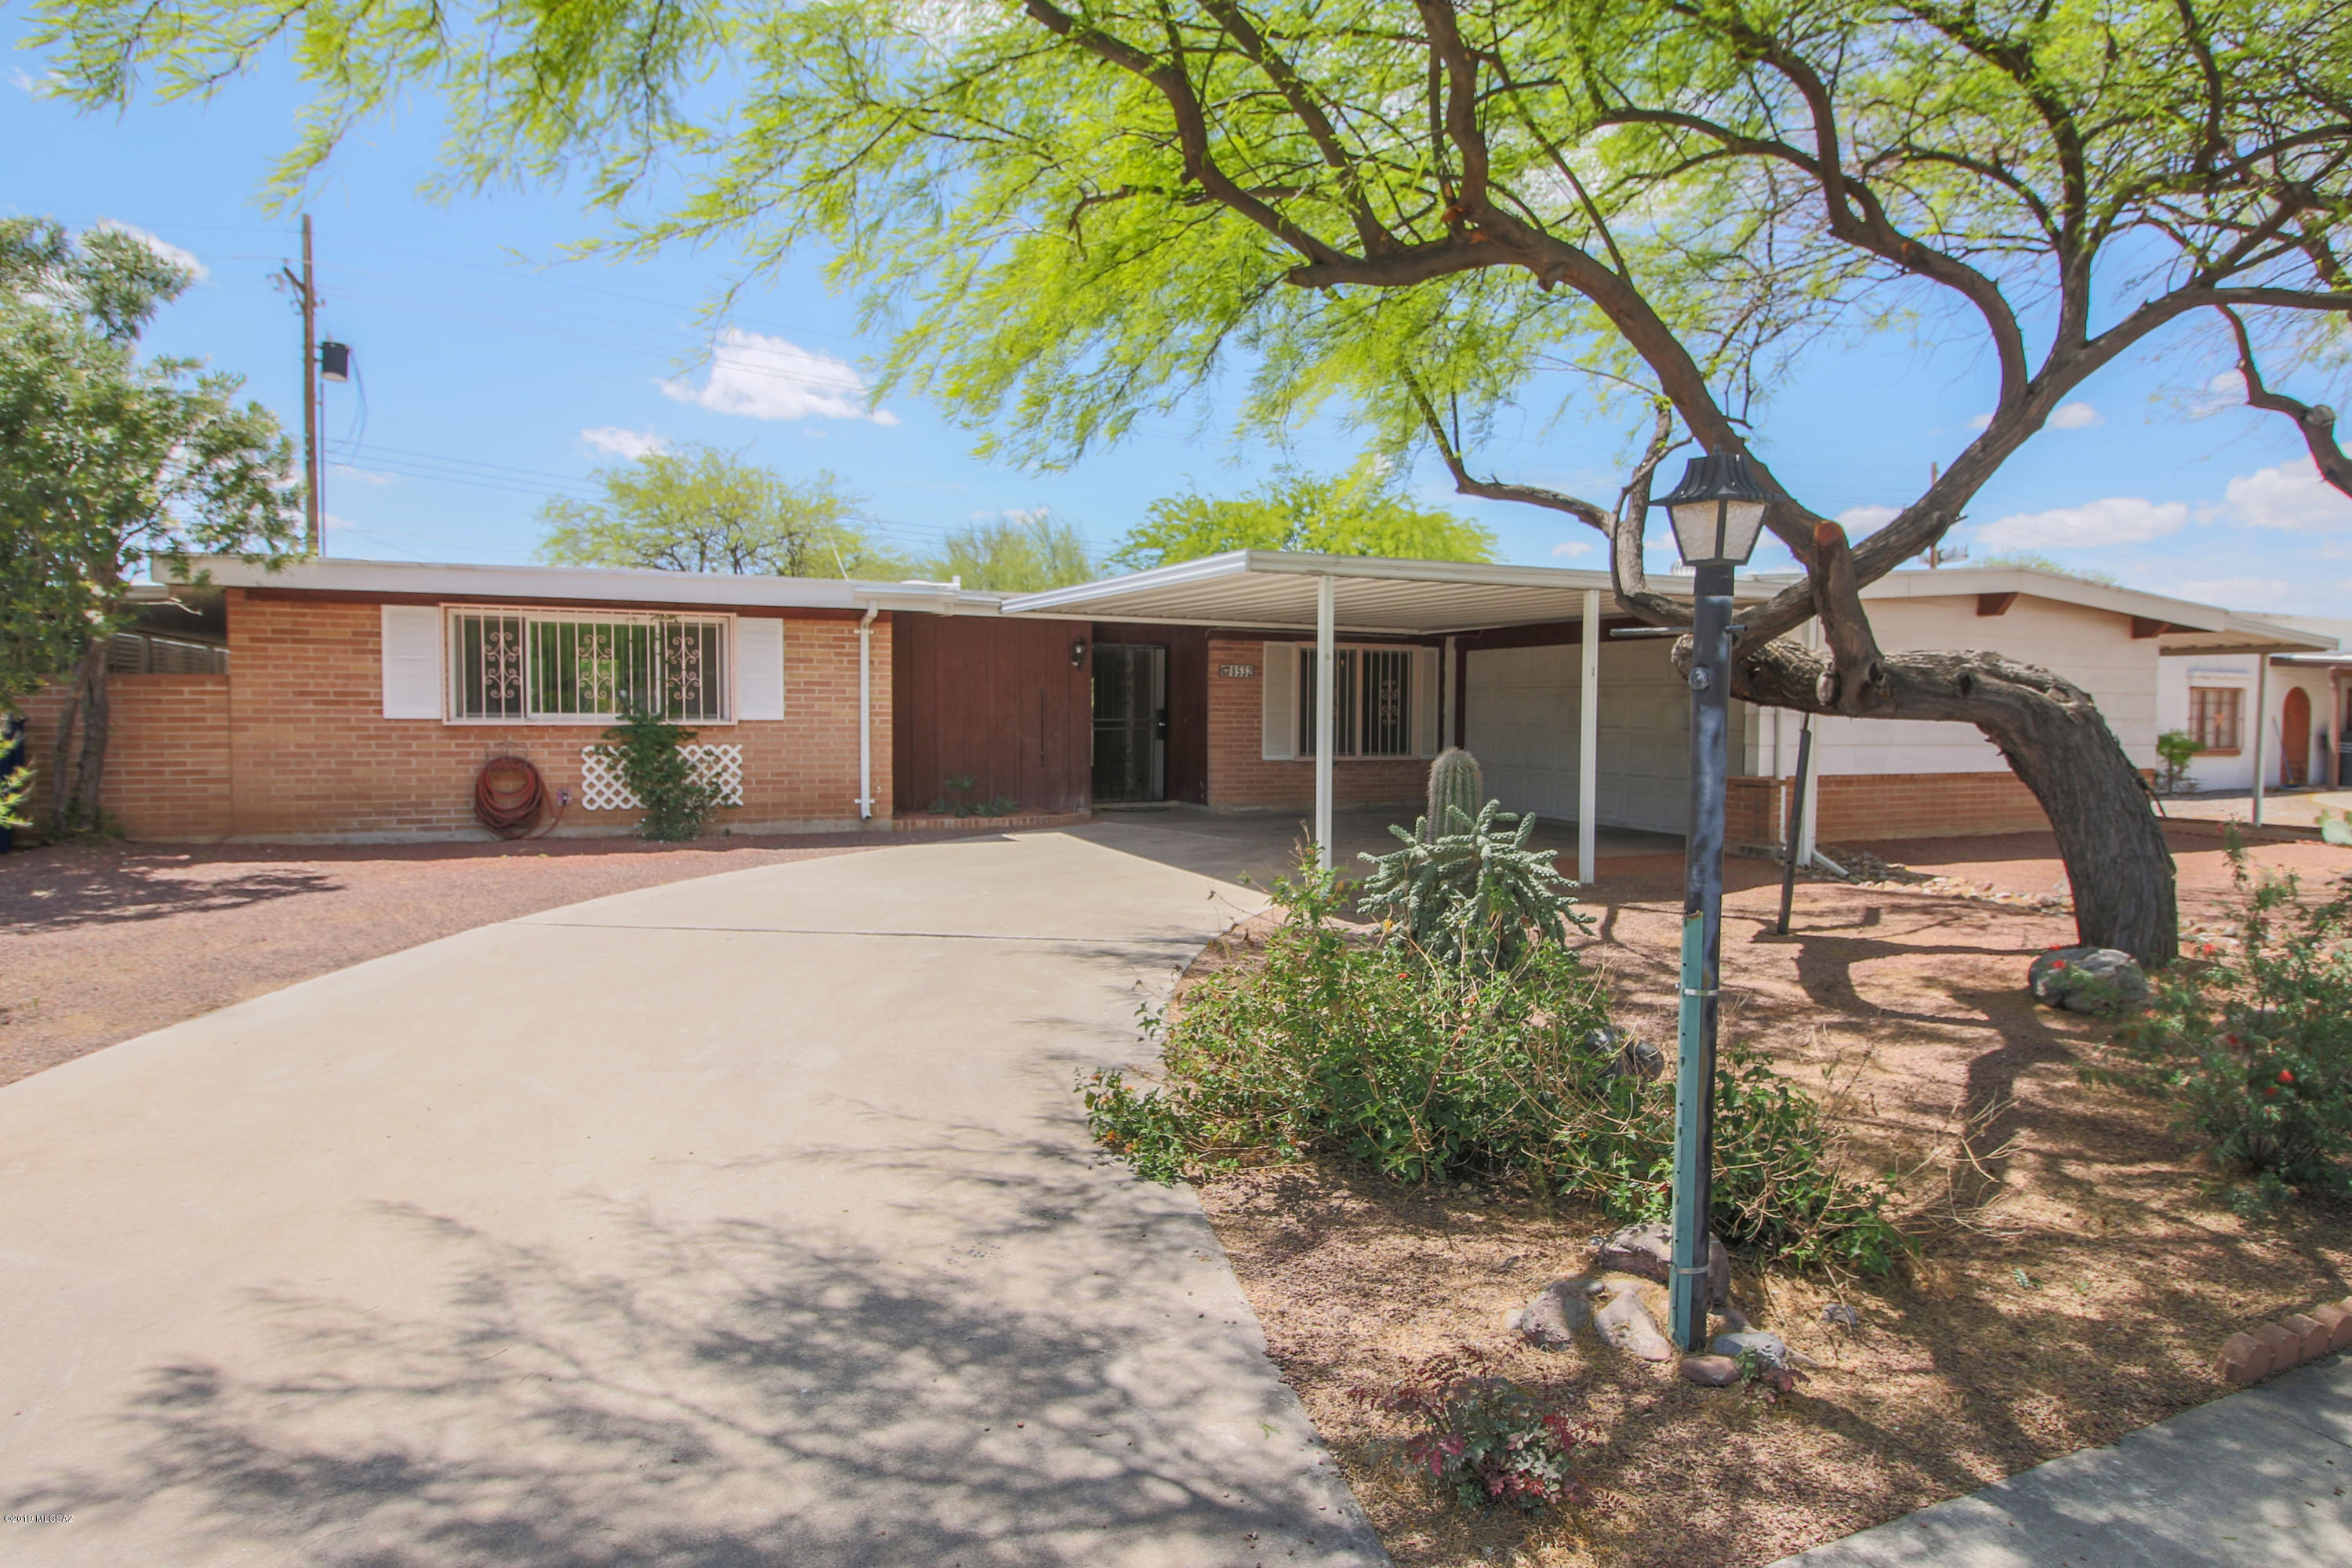 8532 E Beverly Street Tucson Az 85710 The Foothills Today